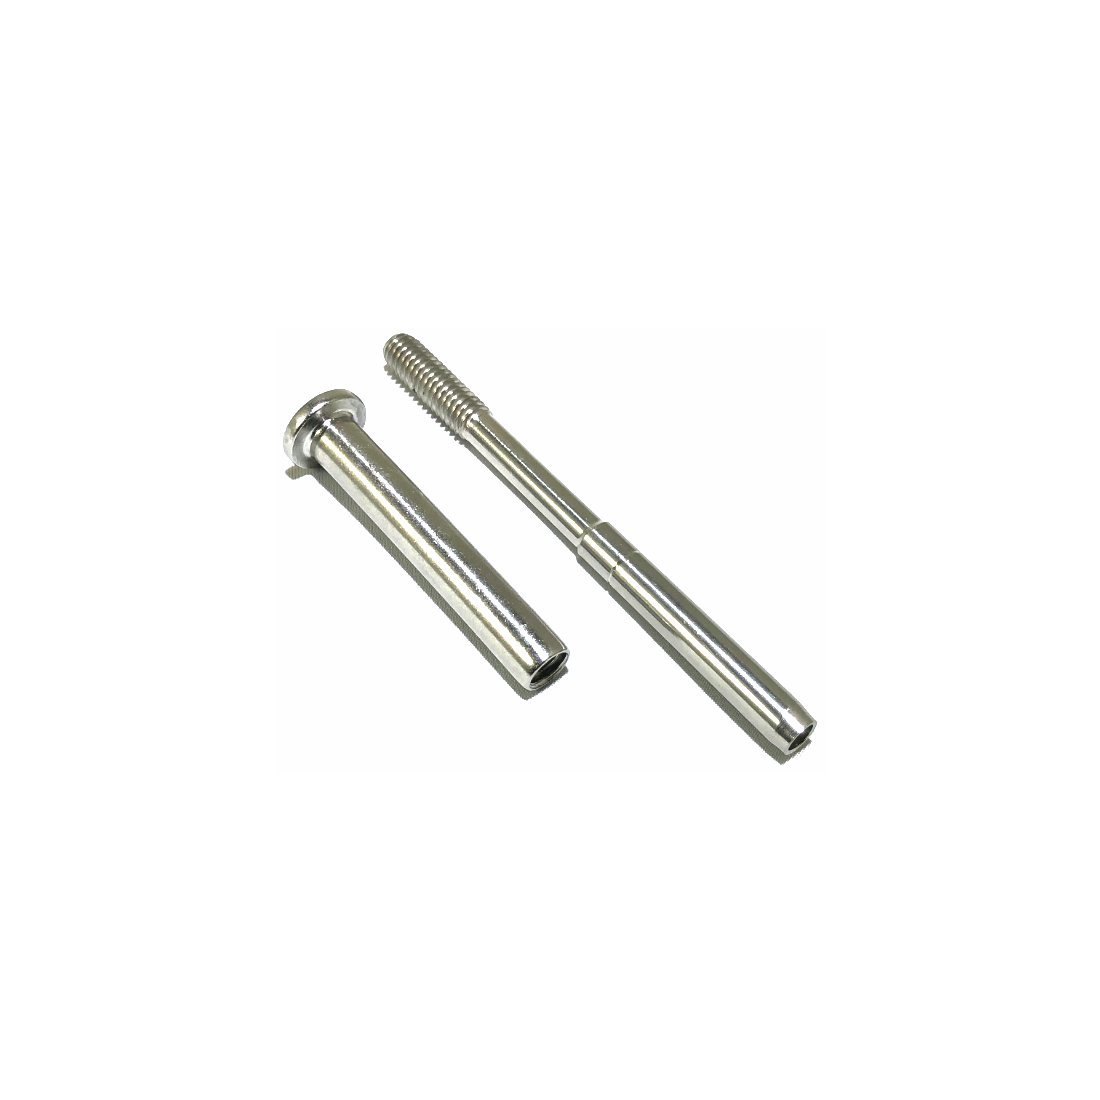 Swage Cable Rail Tensioner - 2.25'' of Tensioning w/Concealed Threads for 3/16'' Cable by LUXLINE (Image #3)